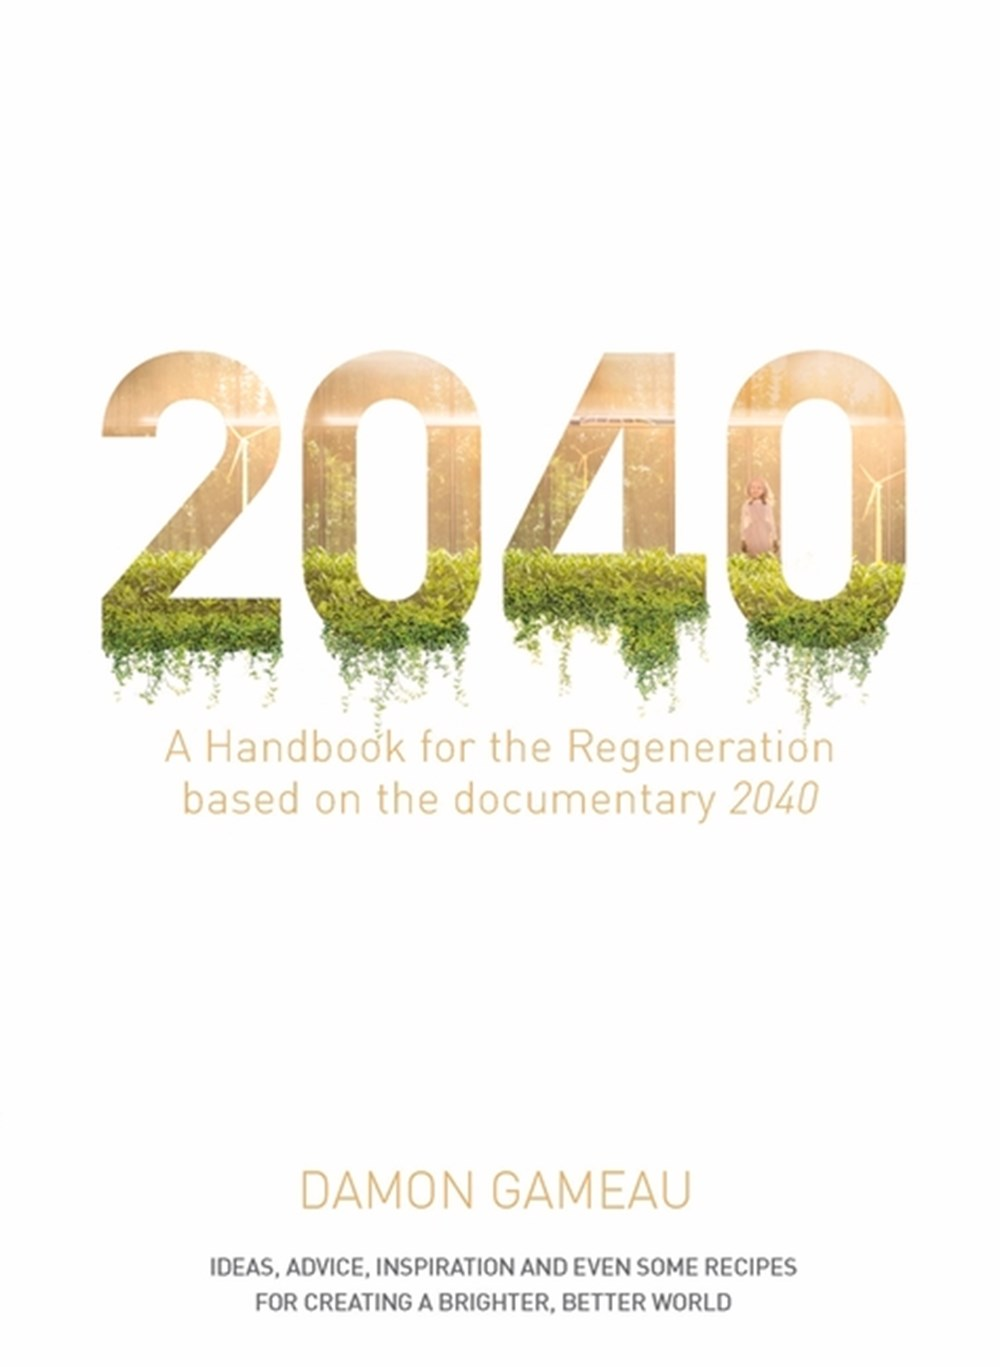 2040 A Handbook for the Regeneration: Based on the Documentary 2040